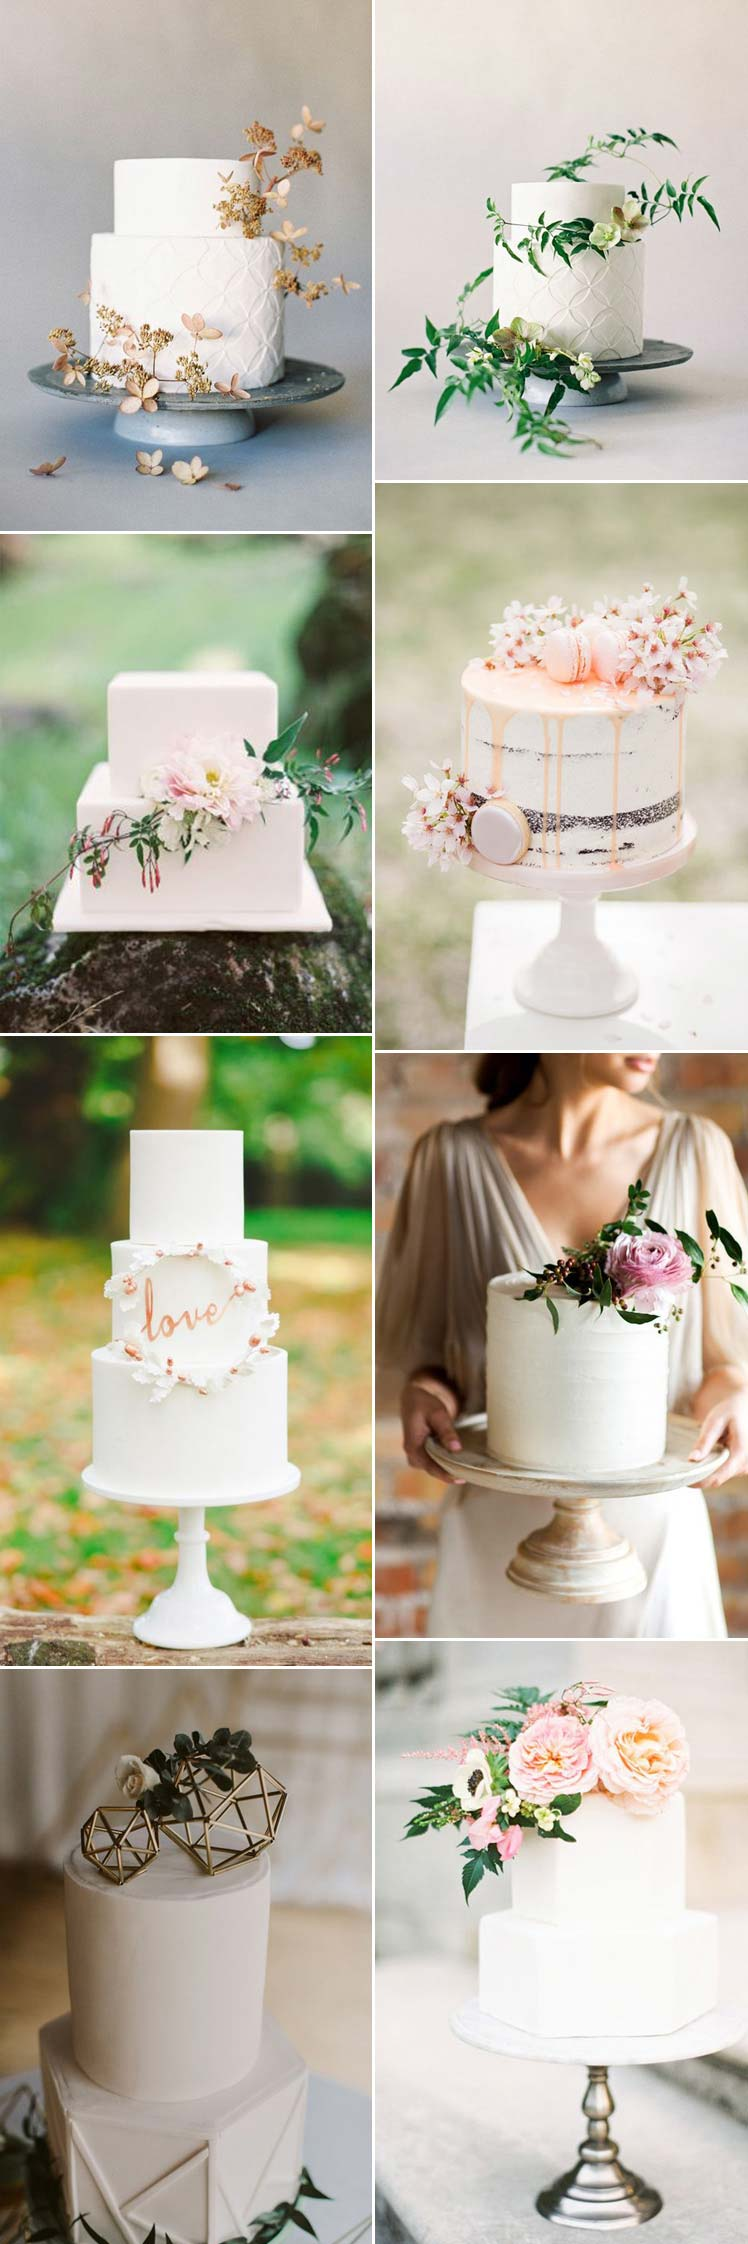 Non traditional white wedding cakes ideas